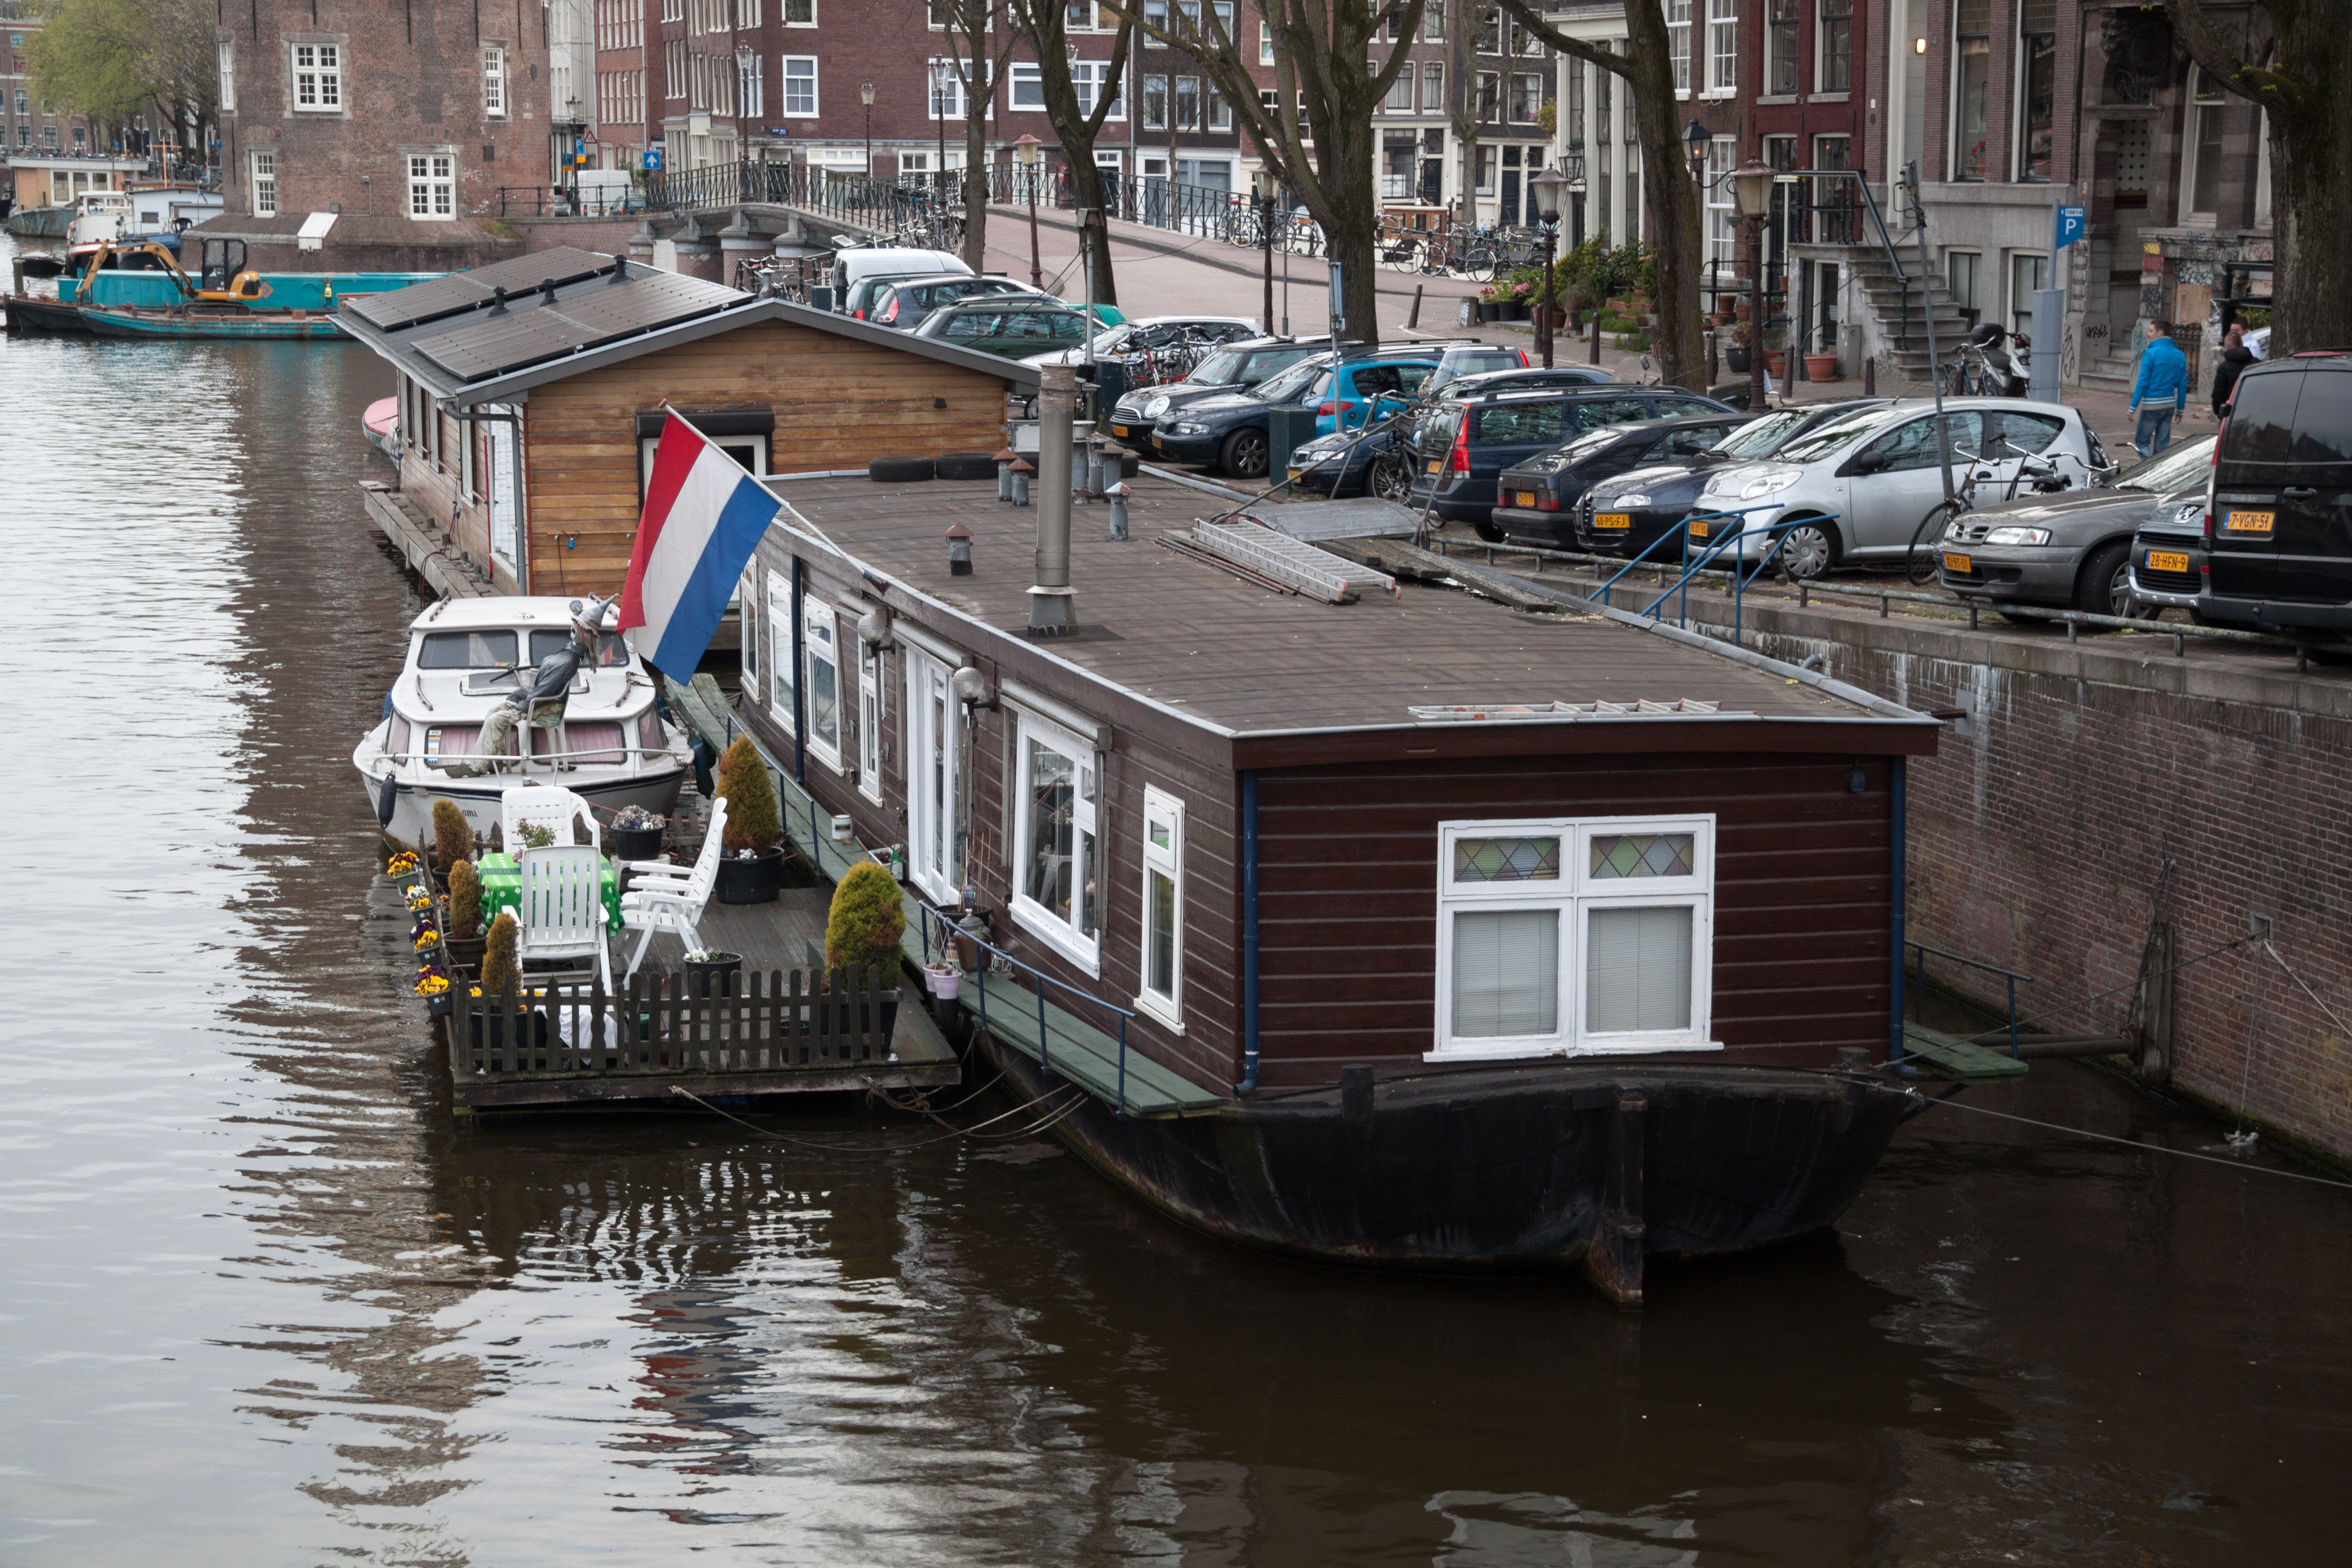 File:Amsterdam   House On The Water Design